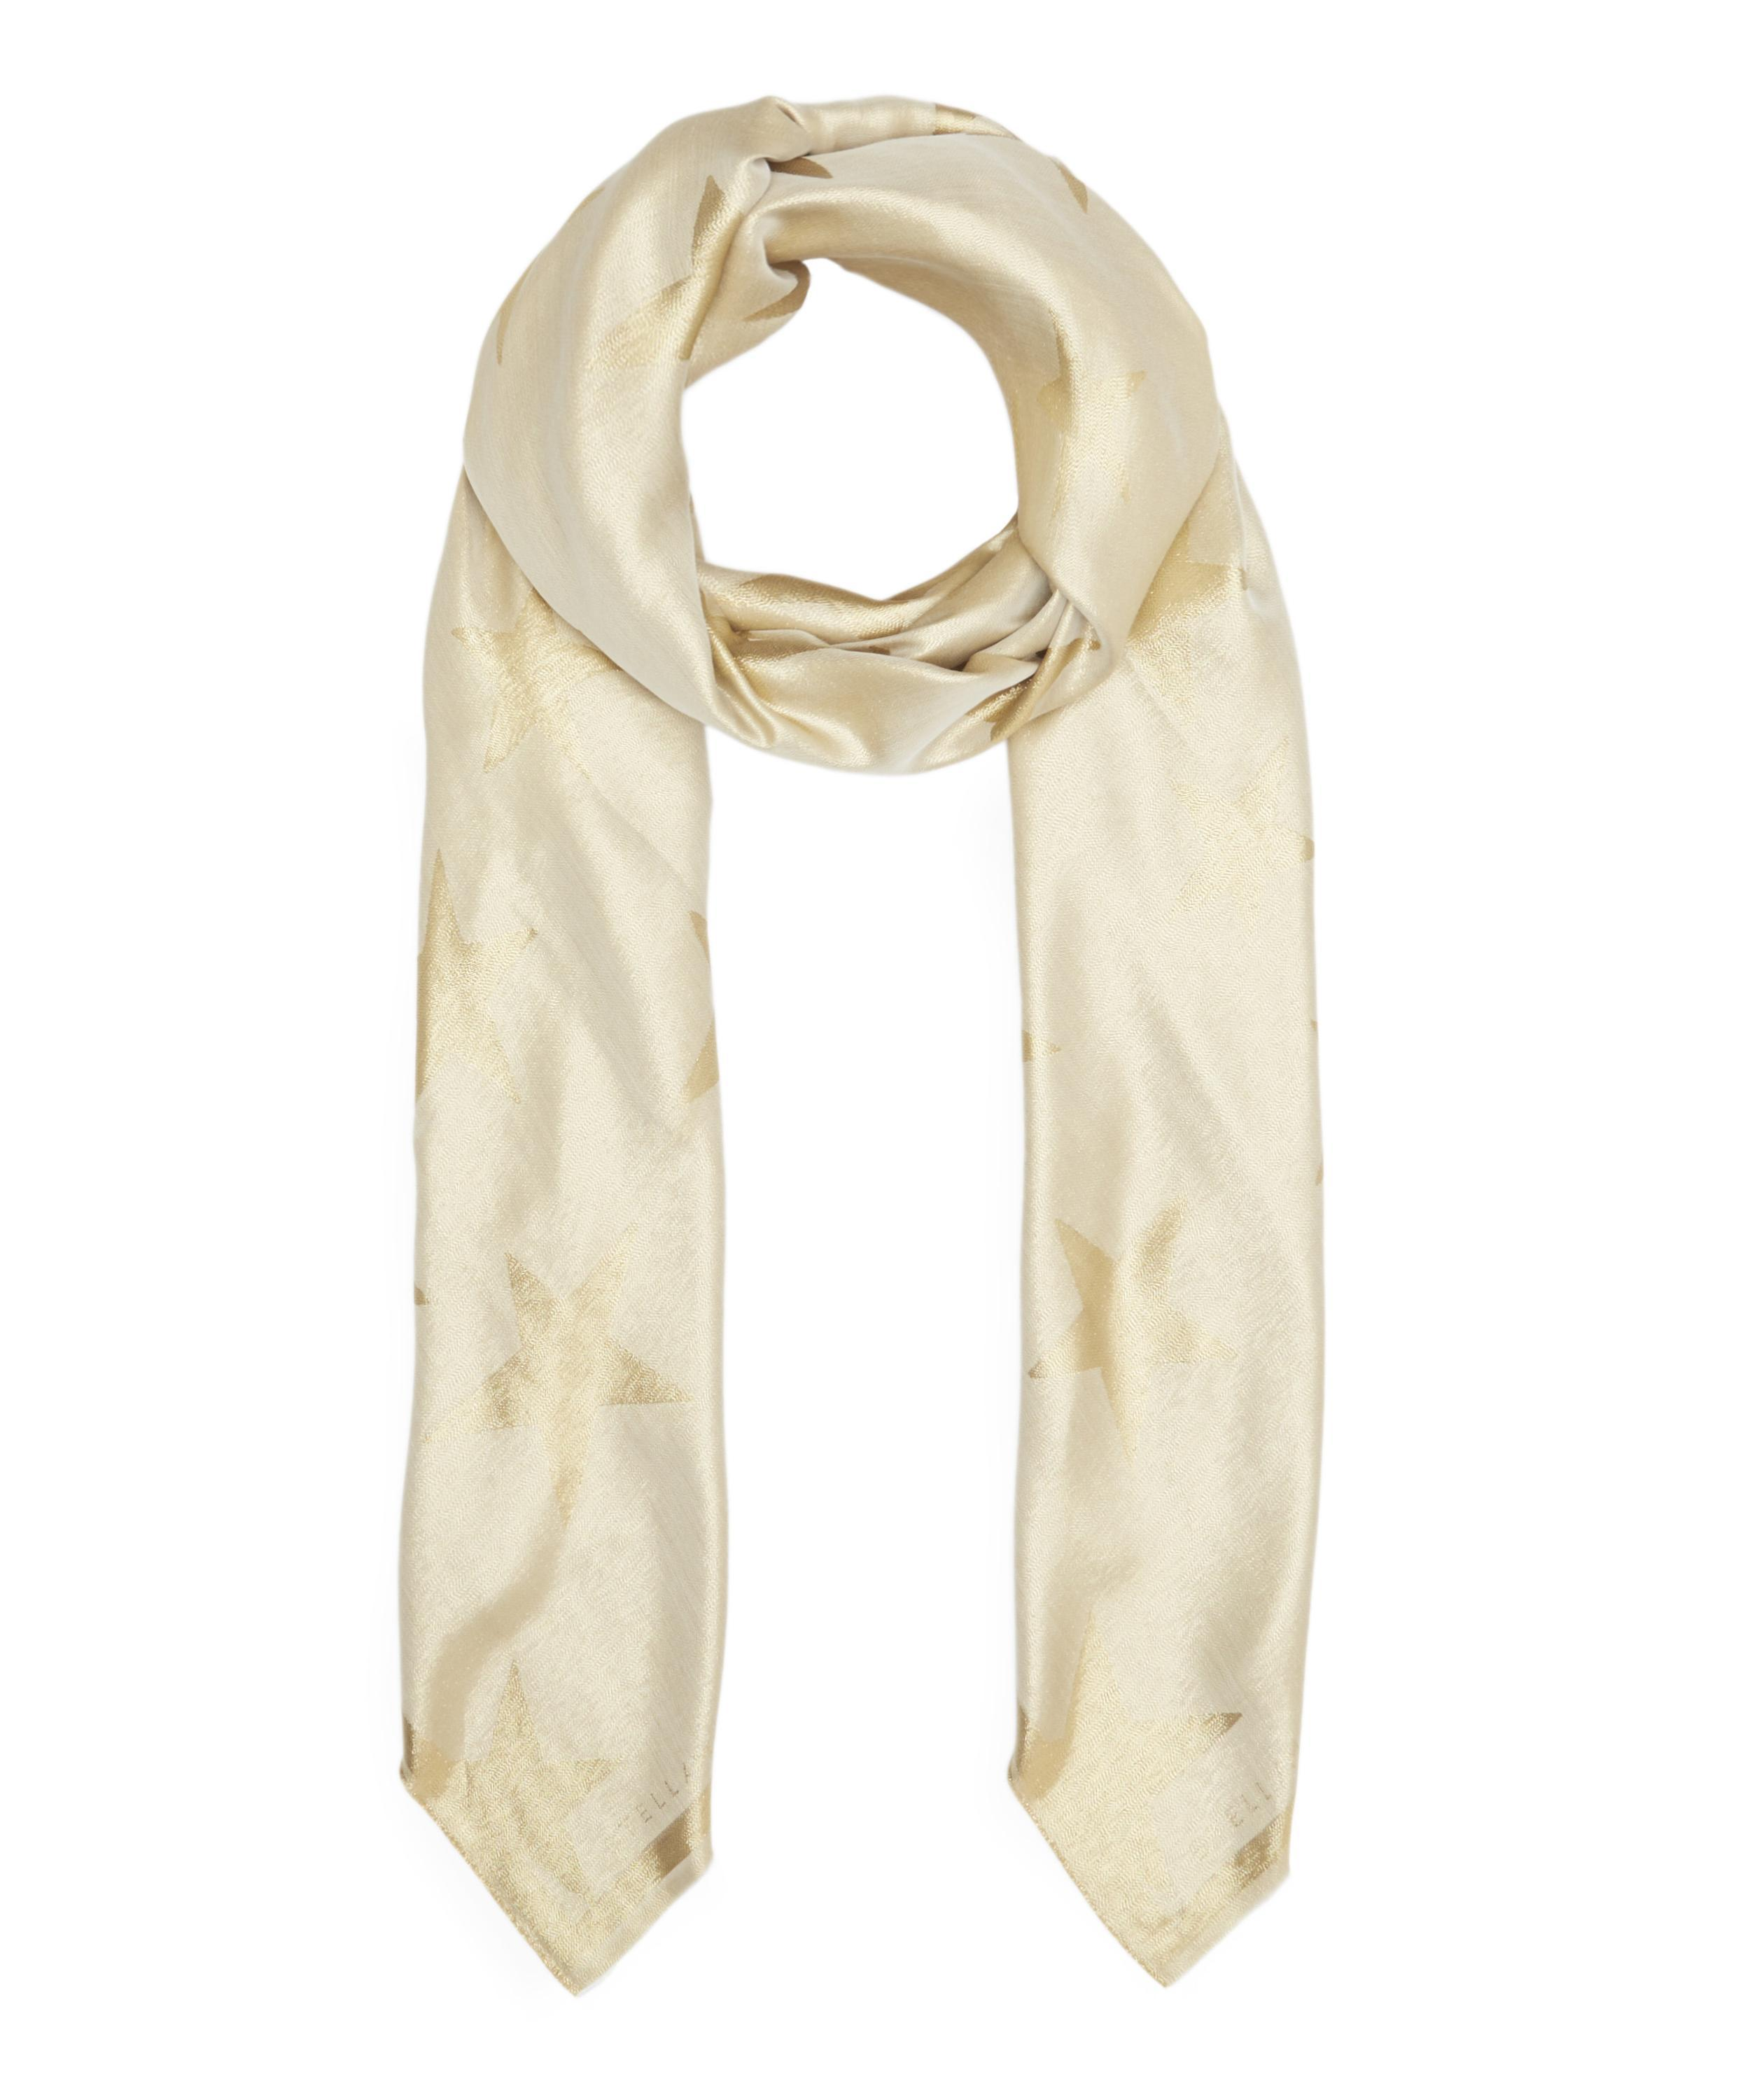 Stella McCartney metallic star scarf Pick A Best Cheap Online Buy Cheap Prices Pay With Paypal Online Affordable 6wEhkEuU